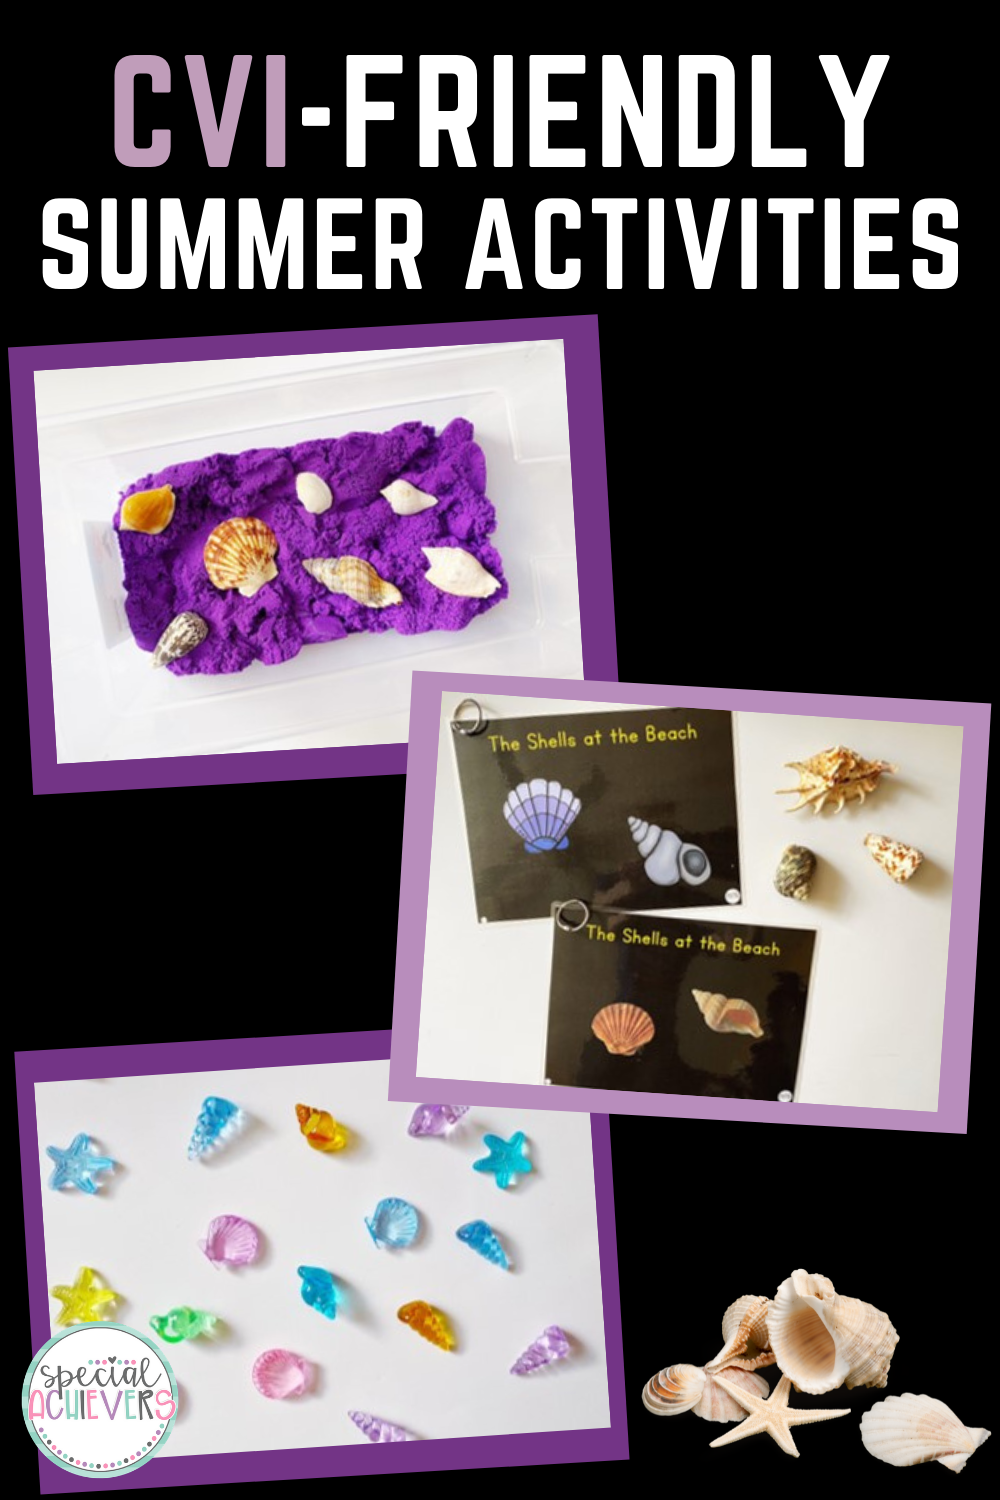 """3 pictures are shown in this pin: sensory bin with purple sand and shells, a shell light table activity, and adapted books titled: """"The Shells at the Beach."""""""